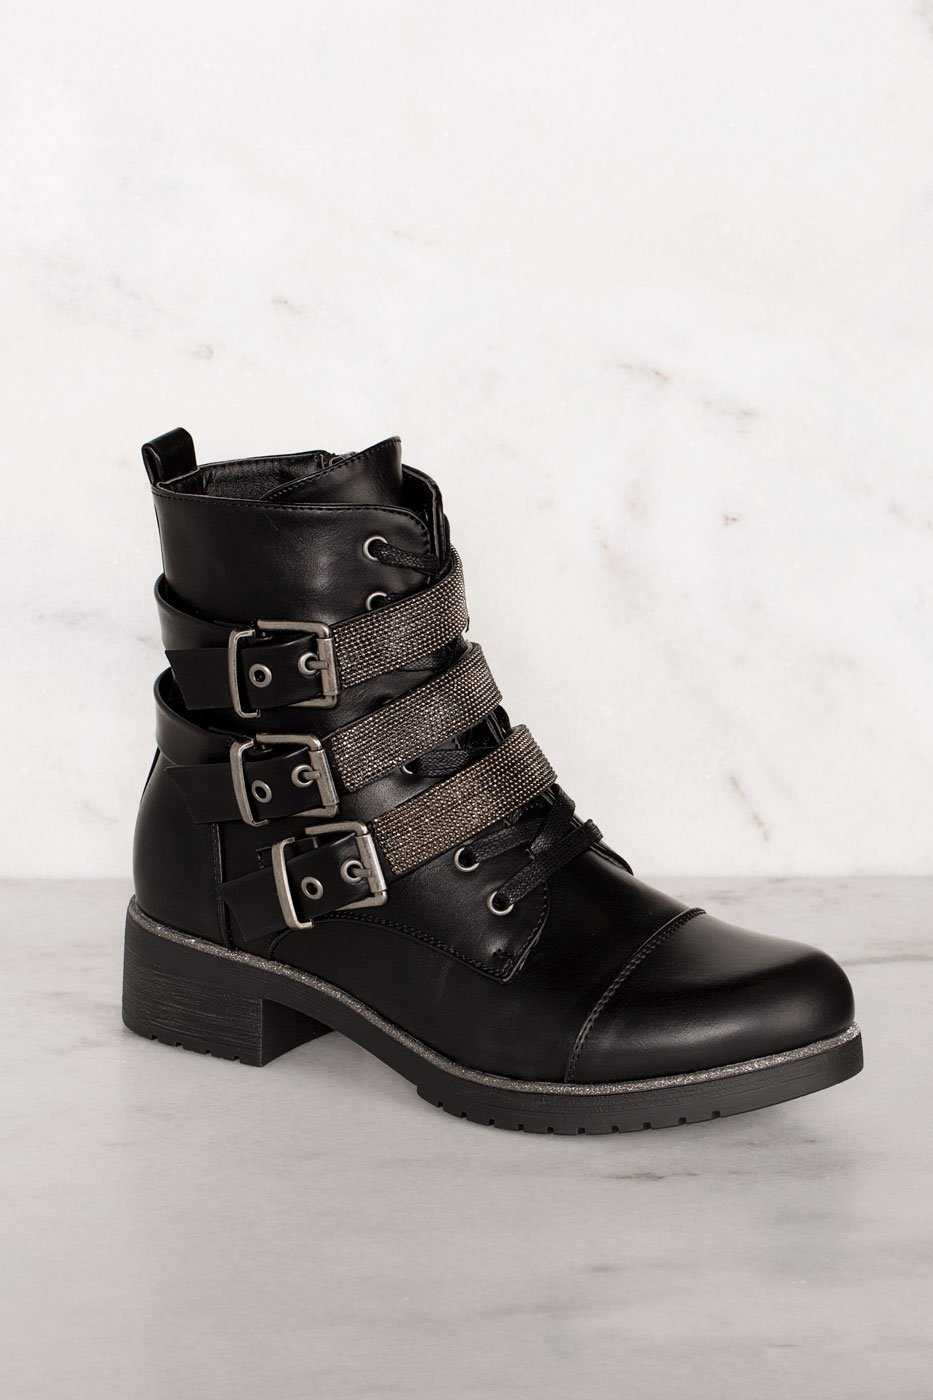 9310665f671 Legendary Black Buckle Boots